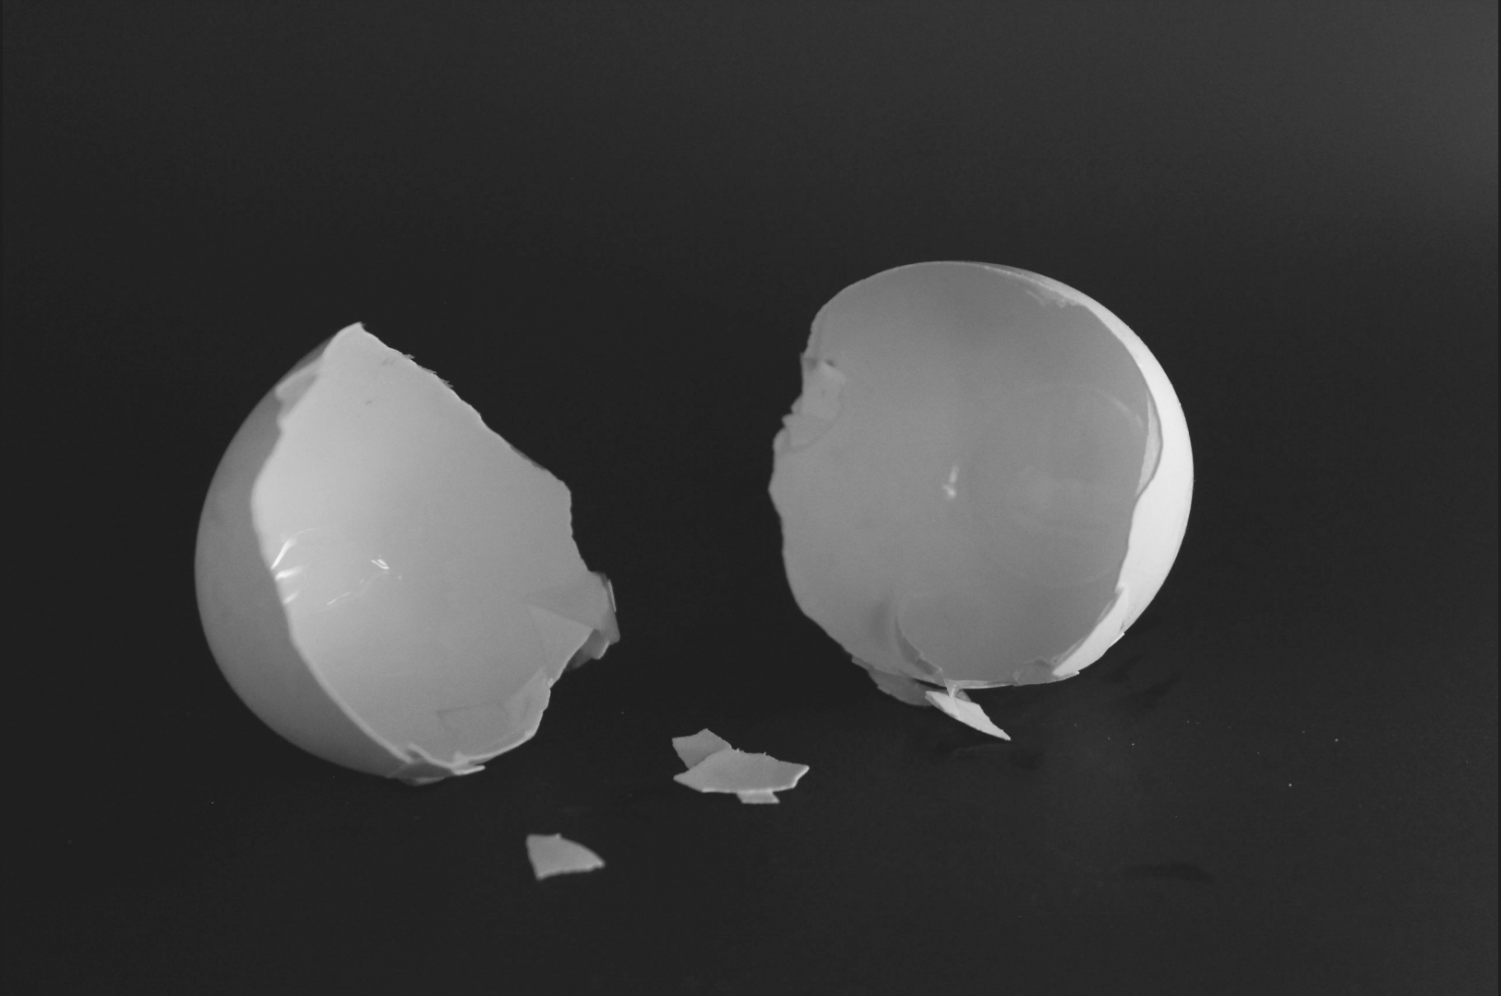 """Student photographer Christi Norris uses eggshells to represent the empty feeling those who have depression often describe. """"Depression on its own feels as if all of your insides have been scooped out and all is left is an empty shell,"""" Norris said. Her article about anxiety and depression not only describes what it"""